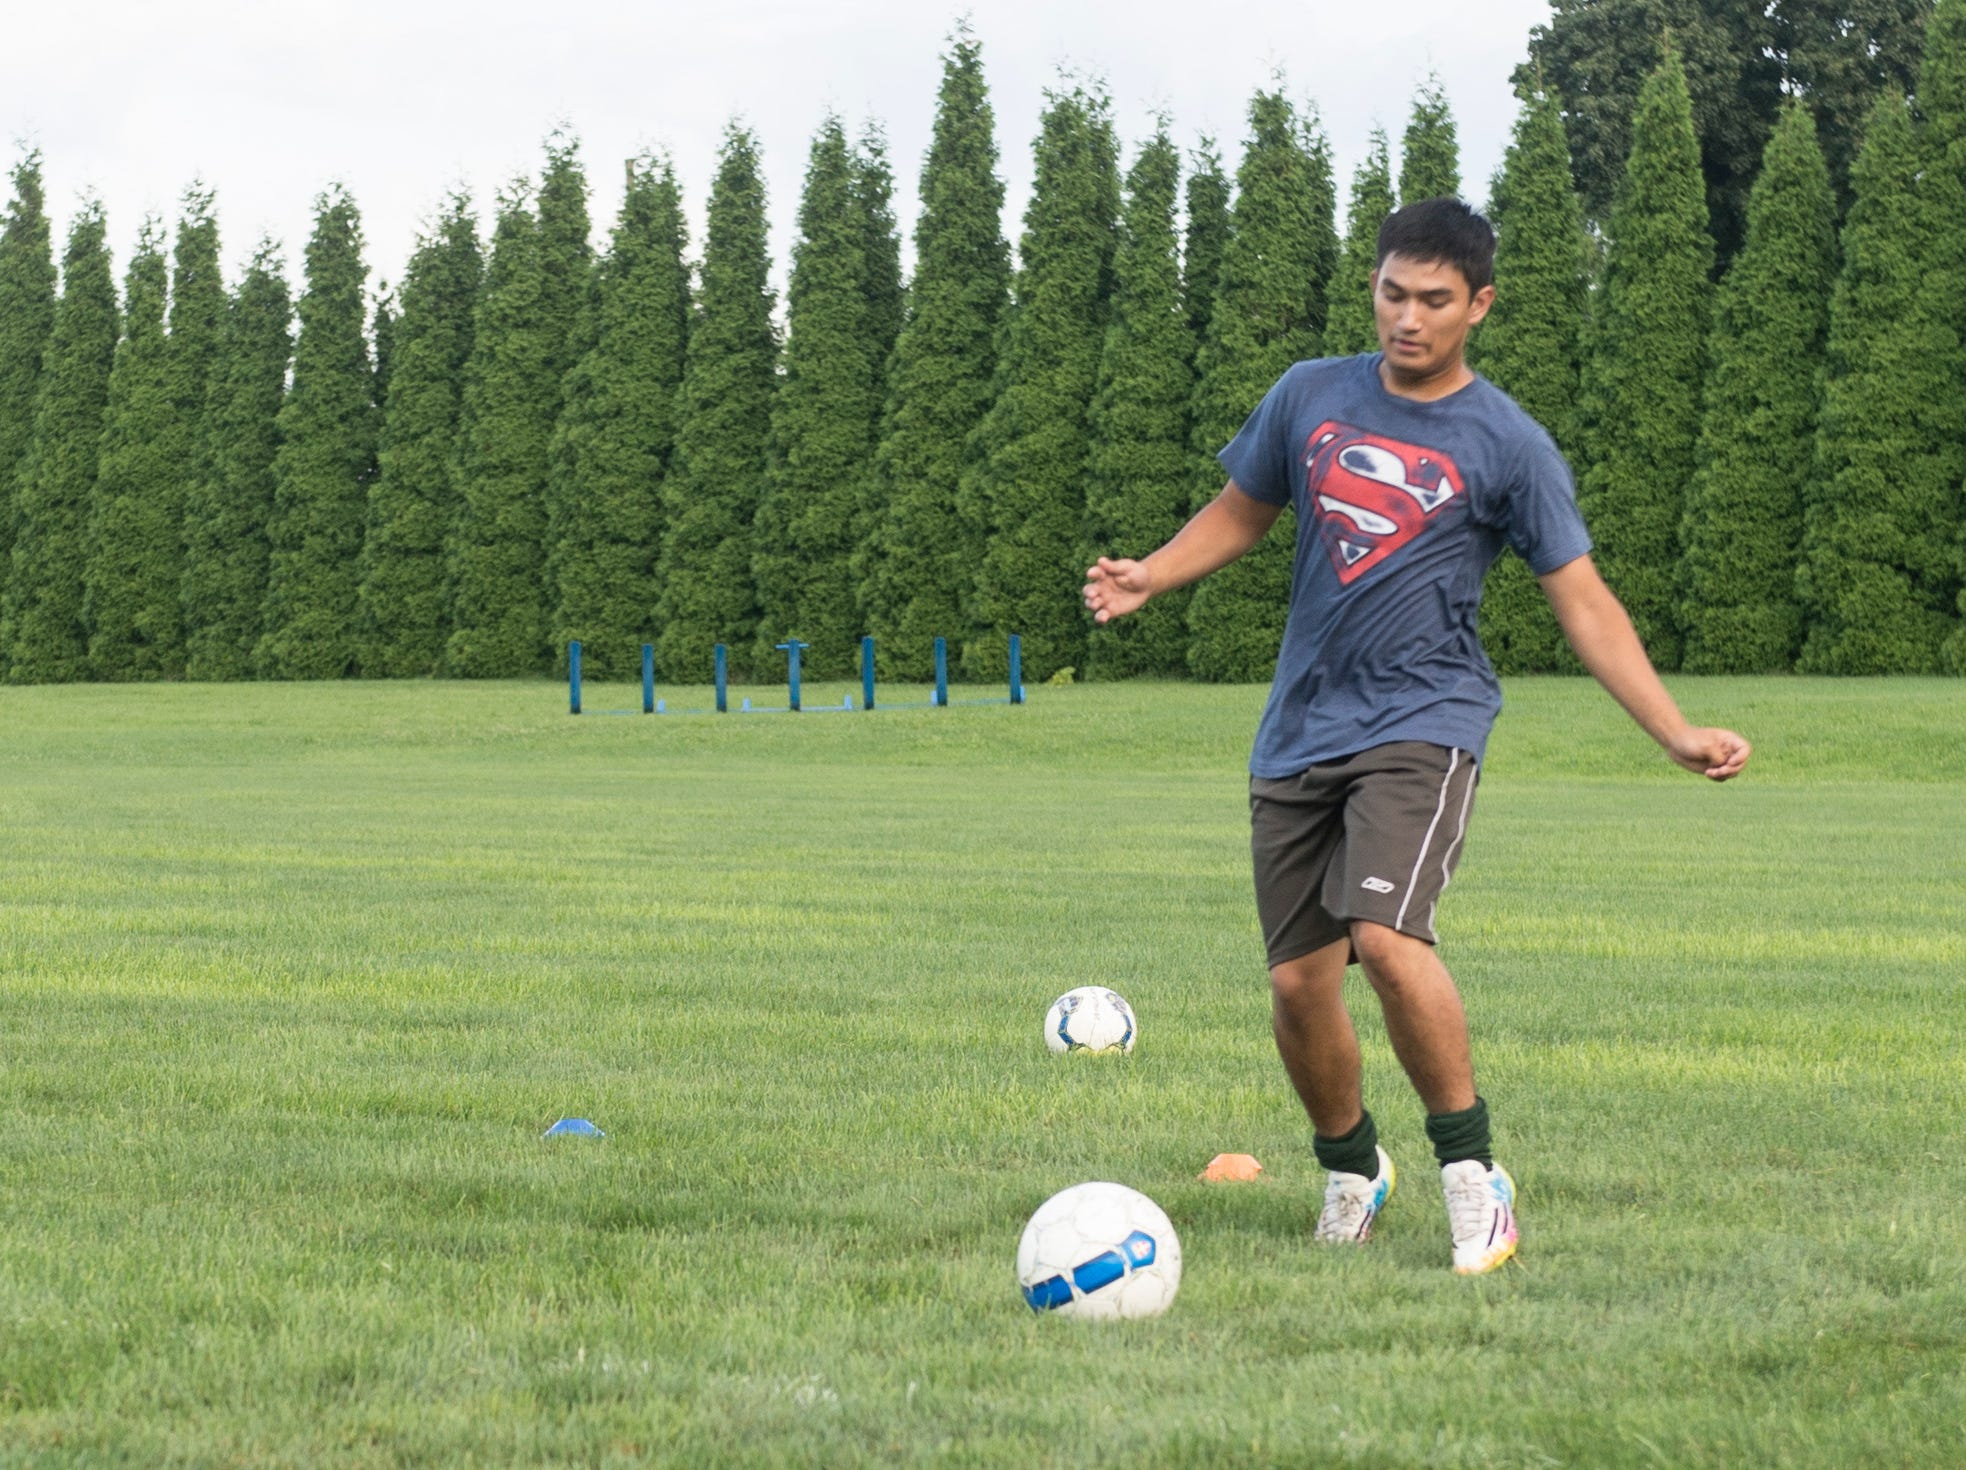 A York Catholic boys' soccer player runs through a passing and agility drill on August 13, 2018.